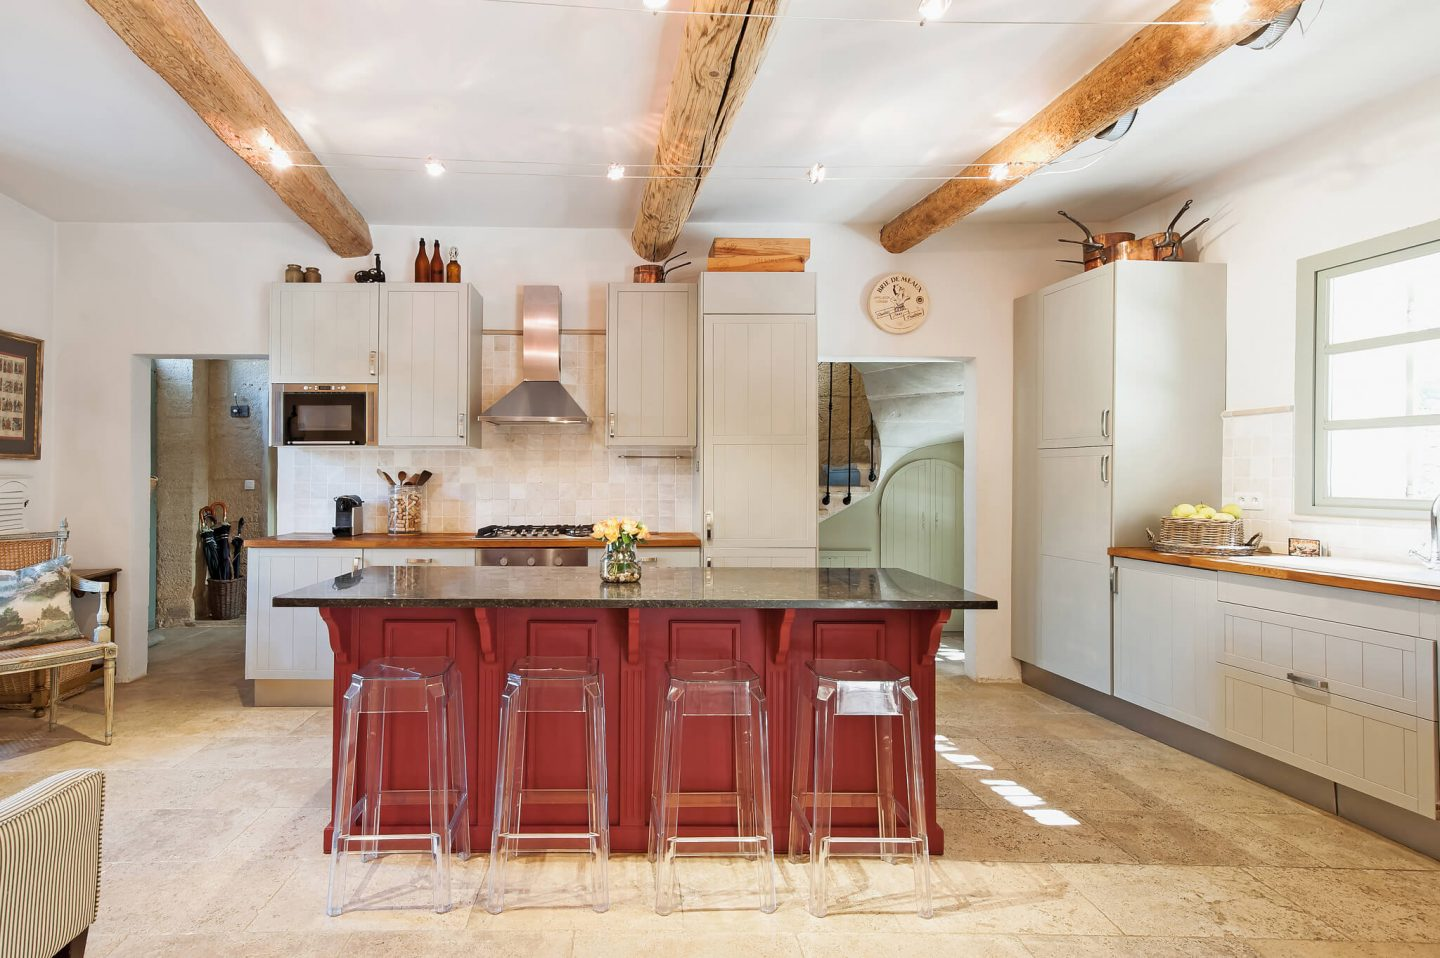 French farmhouse kitchen with modern cabinets and large center island with acrylic bar stools. Haven in.